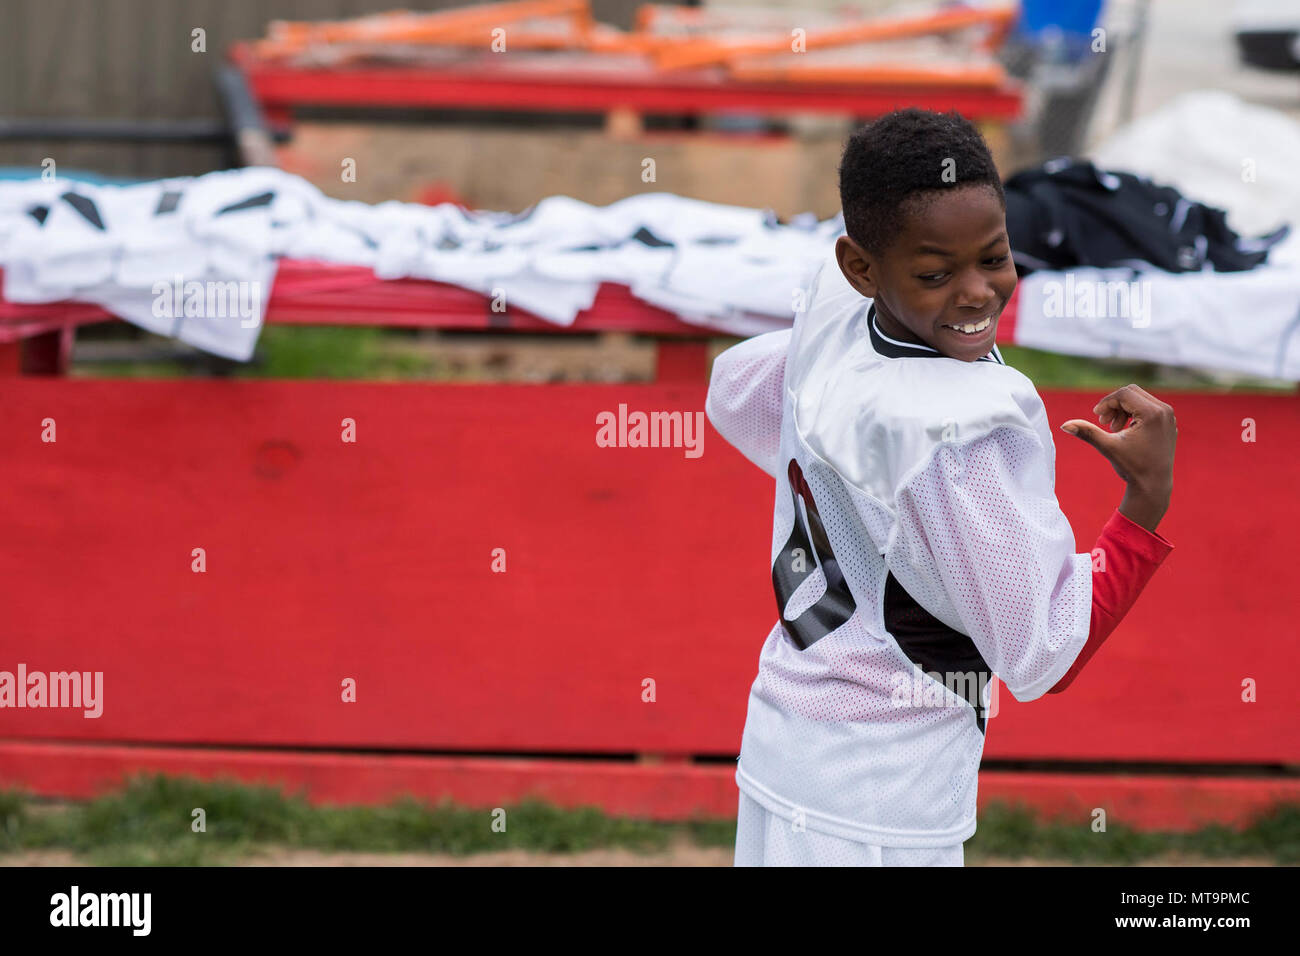 a7822660d593 A member of the Baltimore Youth Lacrosse League looks at his new jersey  with pride April 15